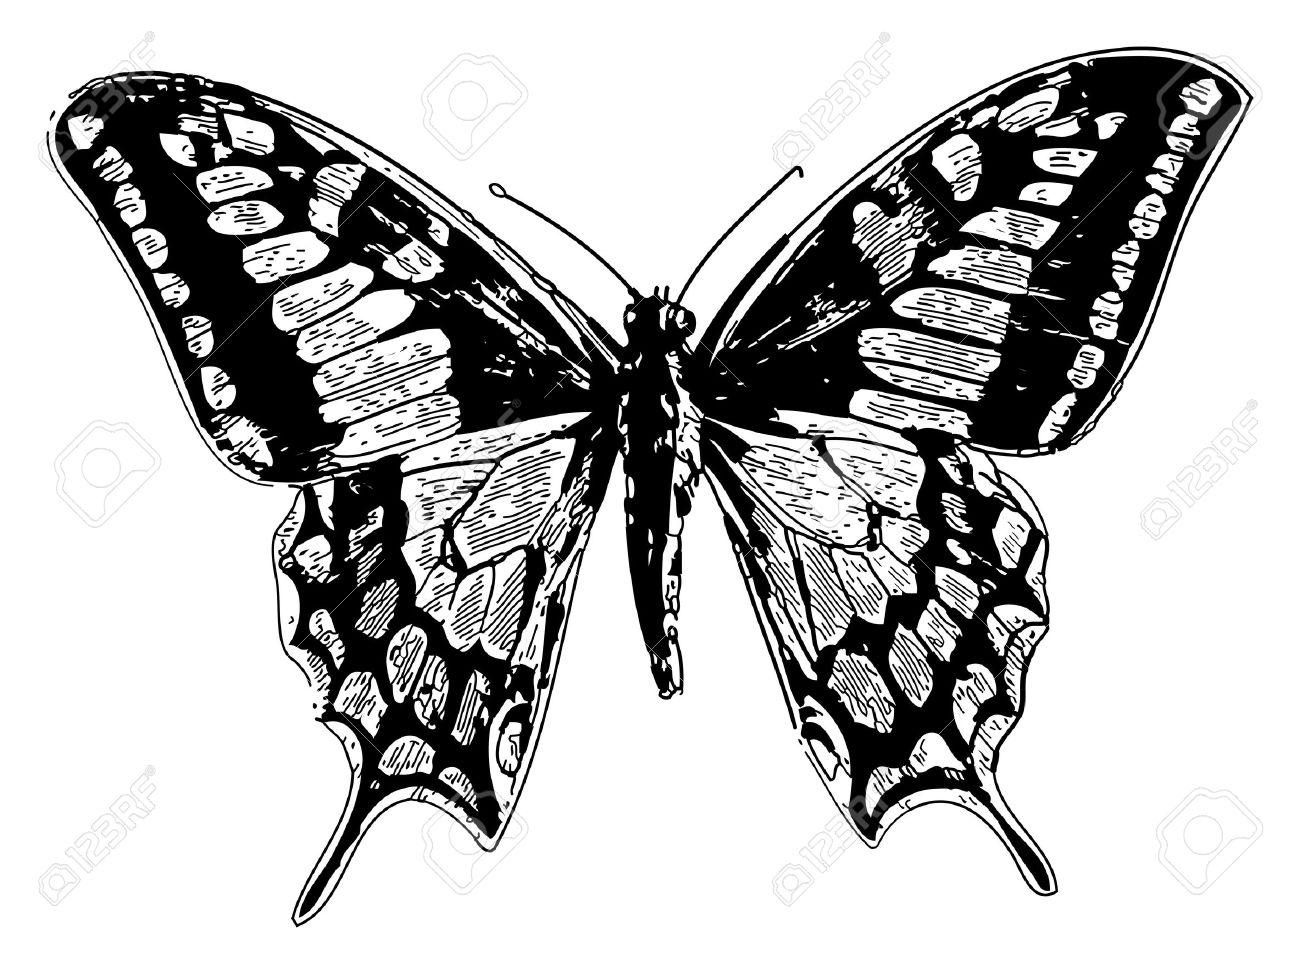 Old engraved illustration of a old world swallowtail or papilio machaon, isolated on white. Live traced. From the Trousset encyclopedia, Paris 1886 - 1891. - 13766911